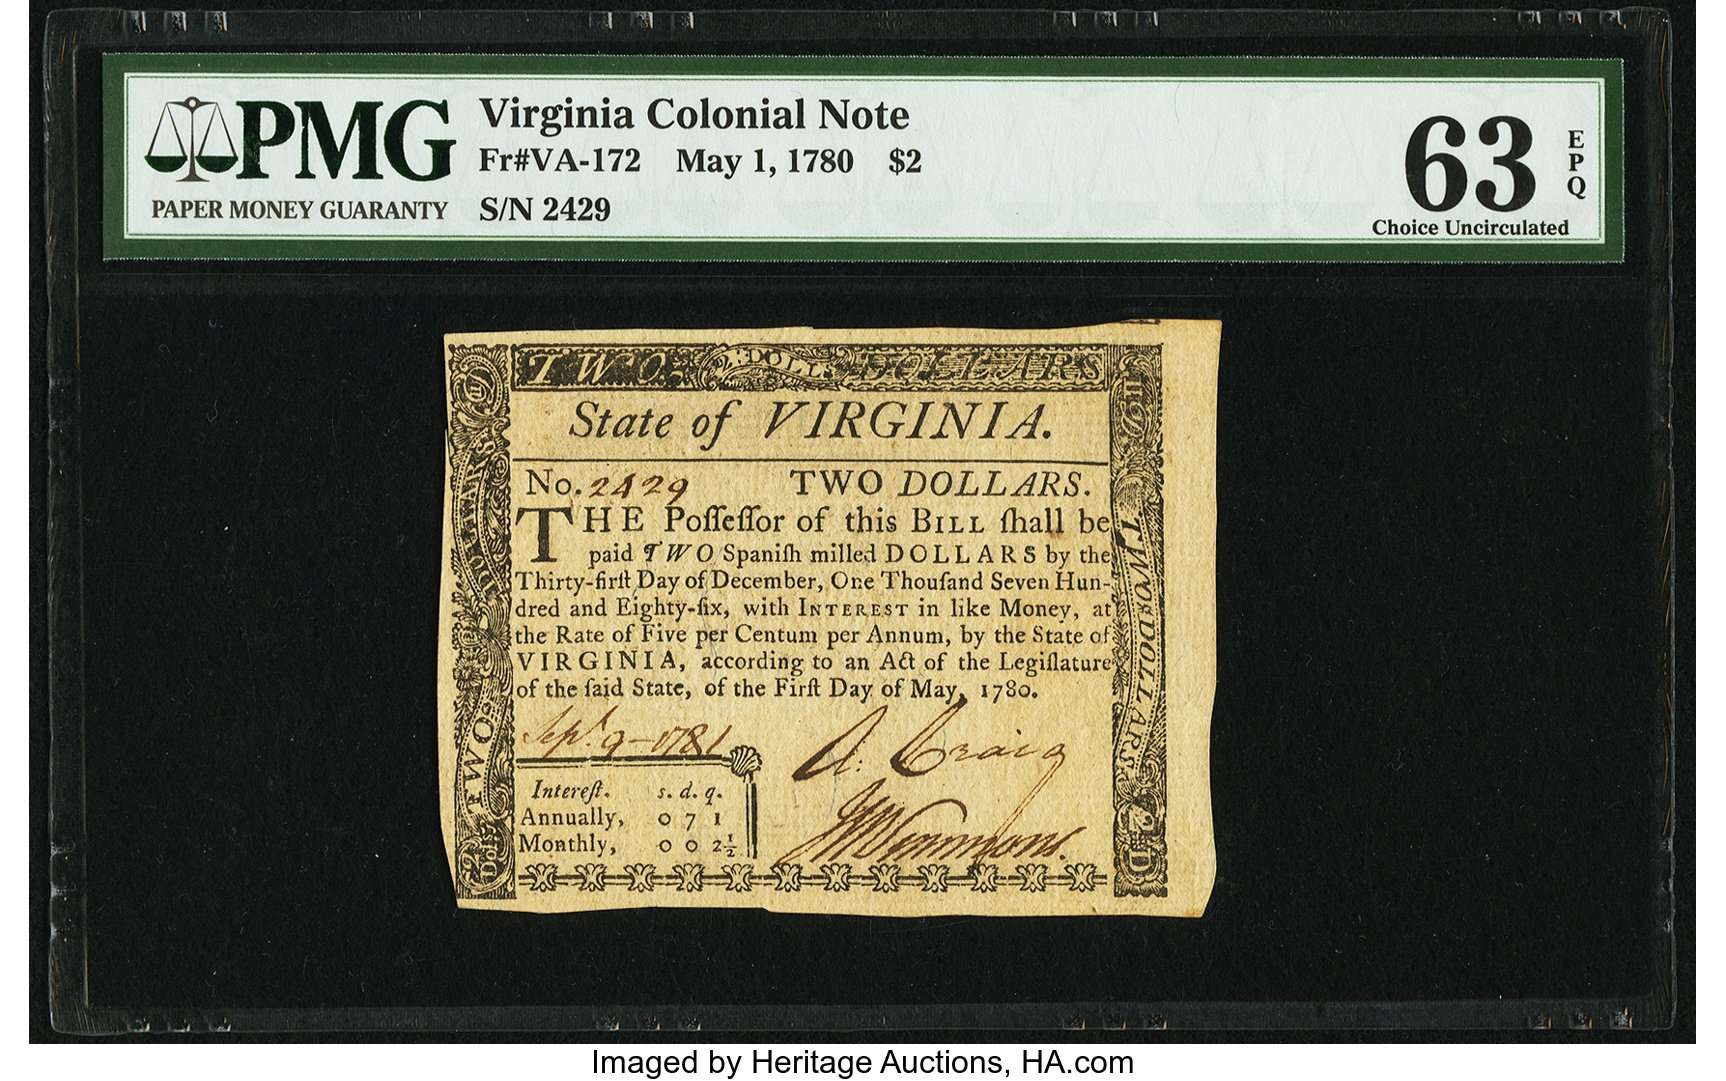 sample image for 1780